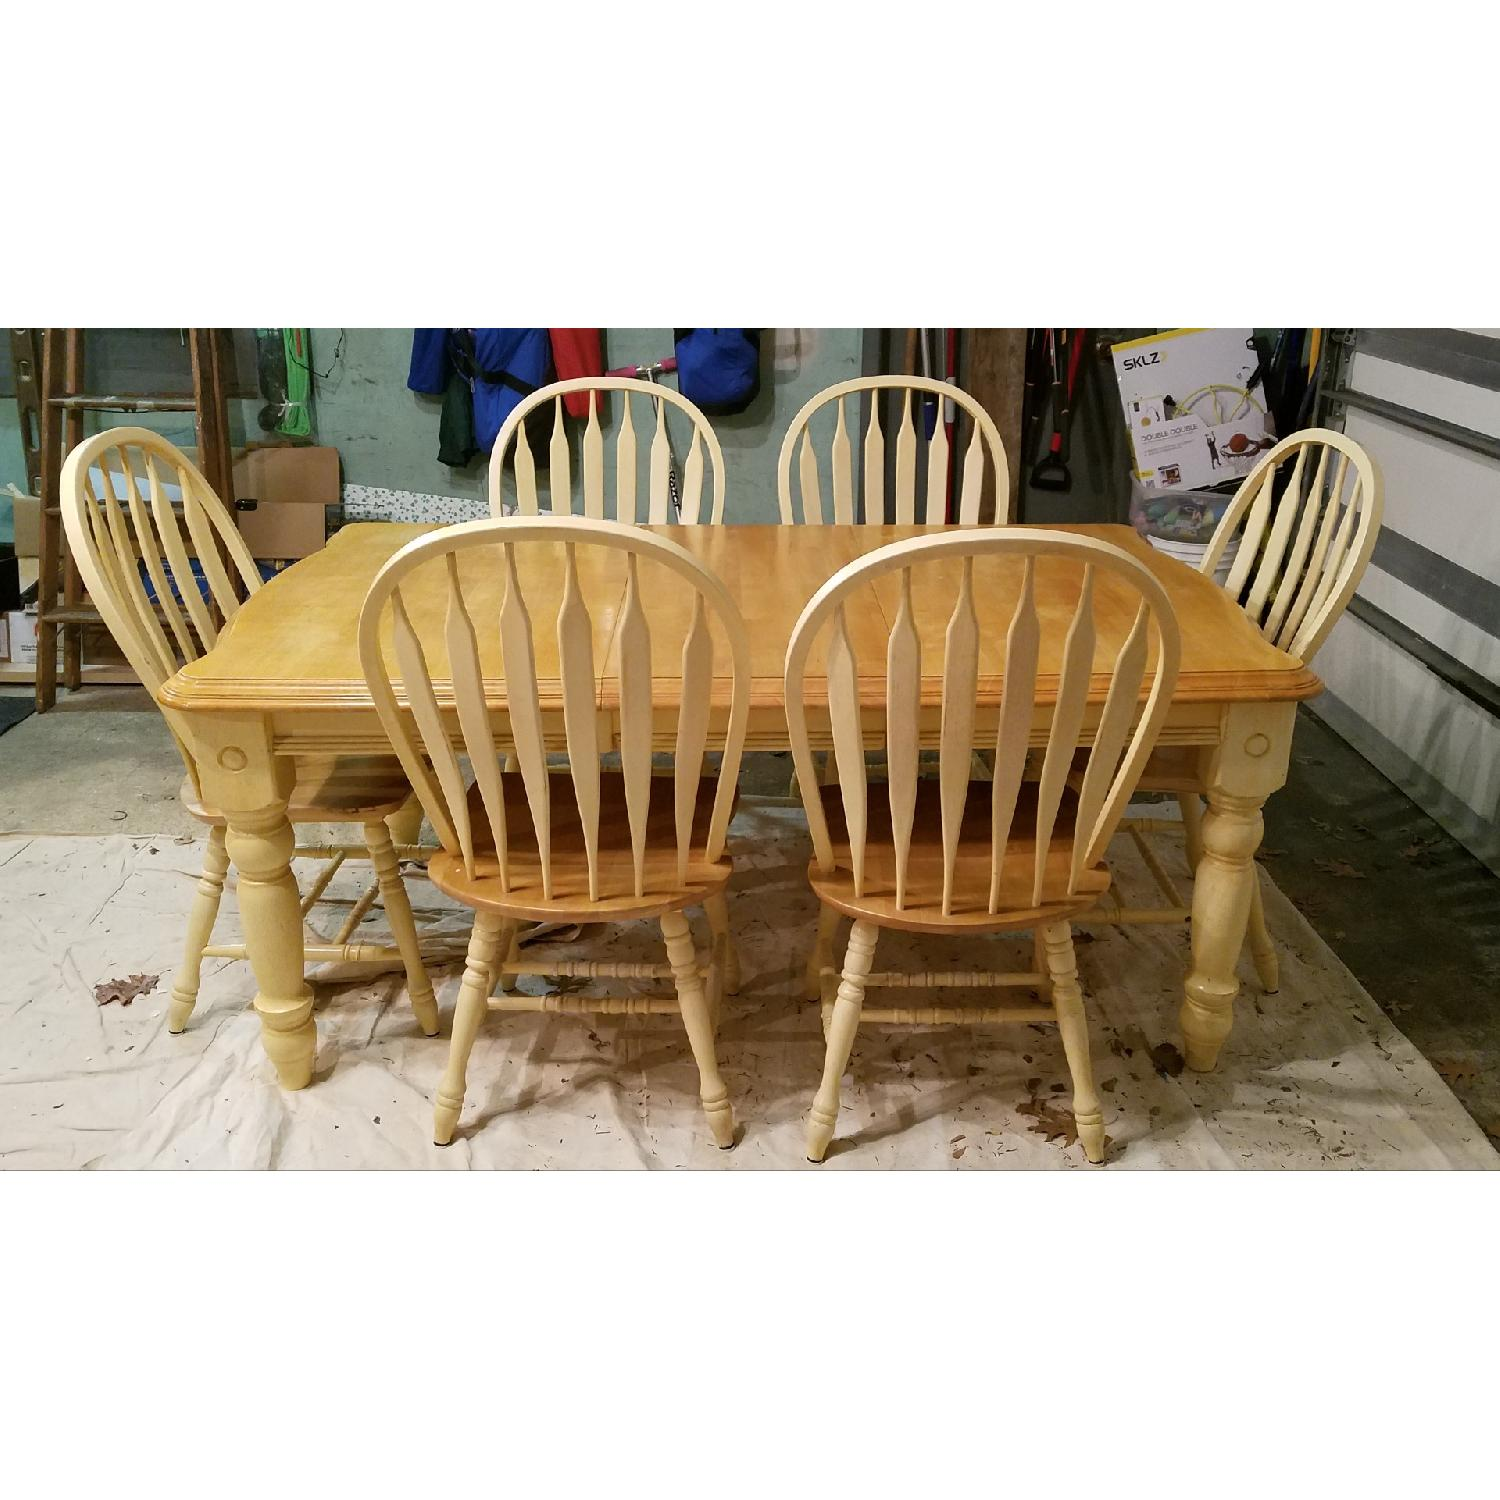 Wood Expandable Dining Table w/ 6 Chairs - image-2